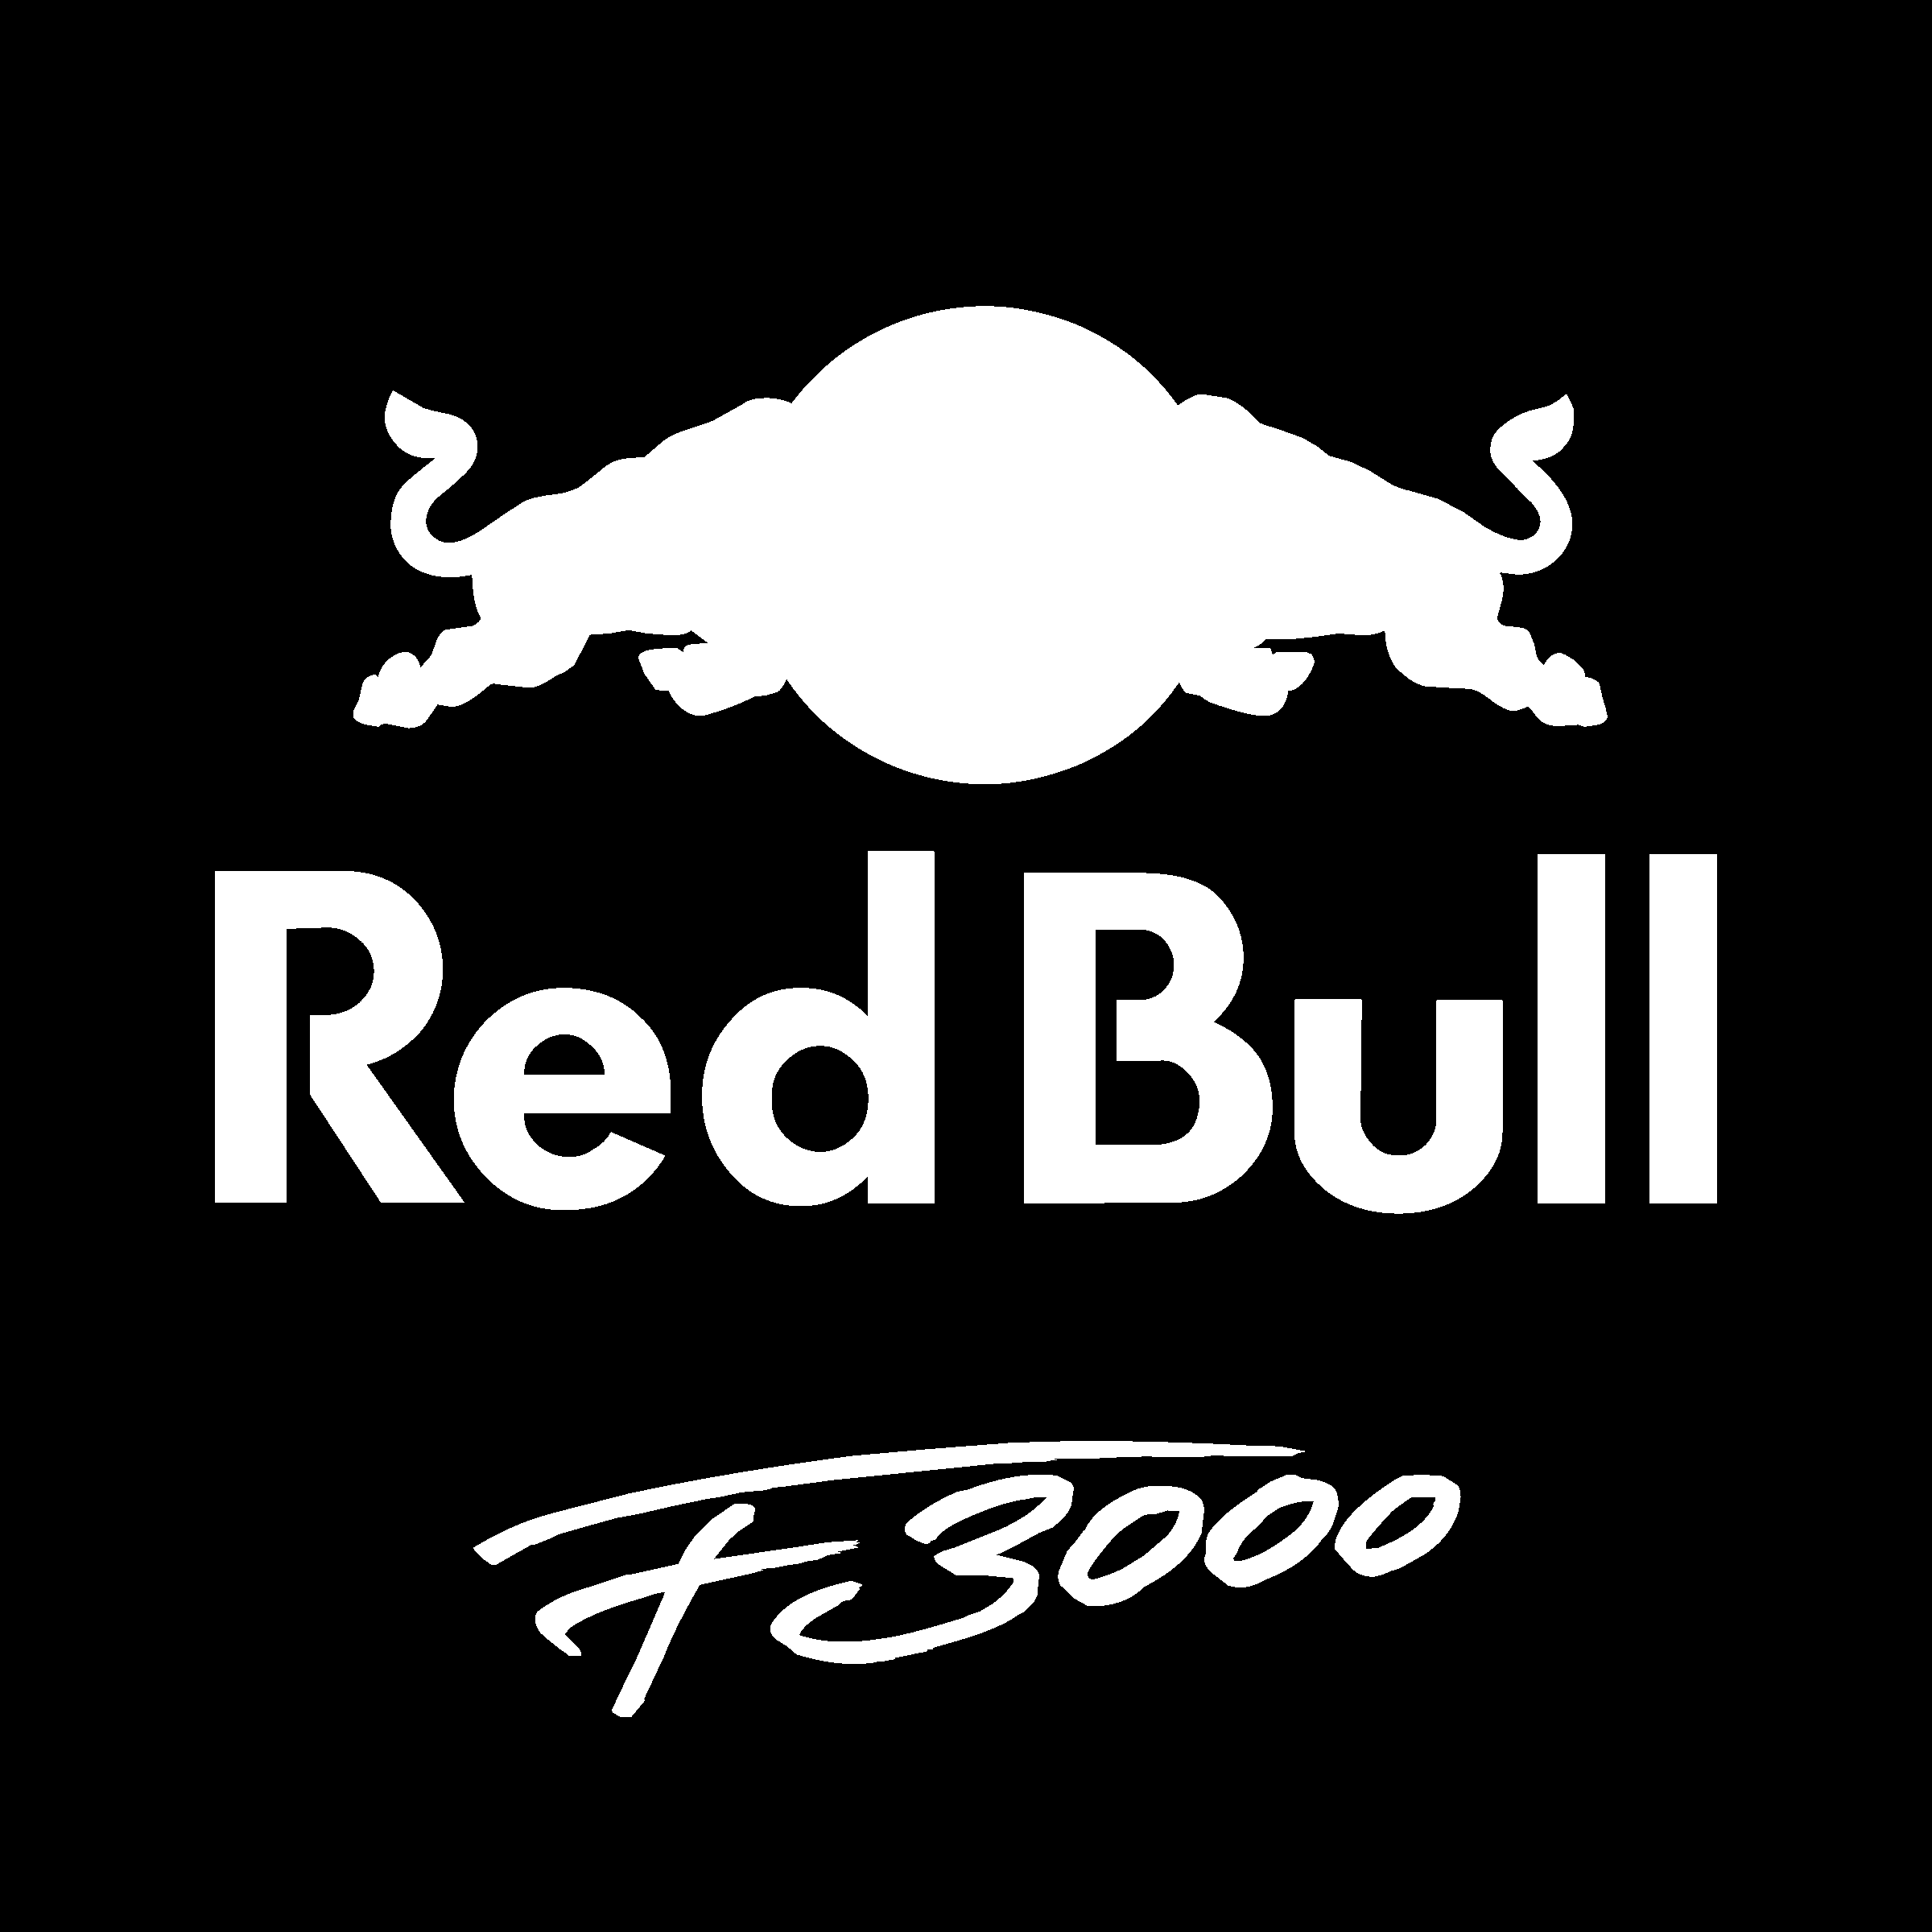 Red bull junior team f3000 logo black and white